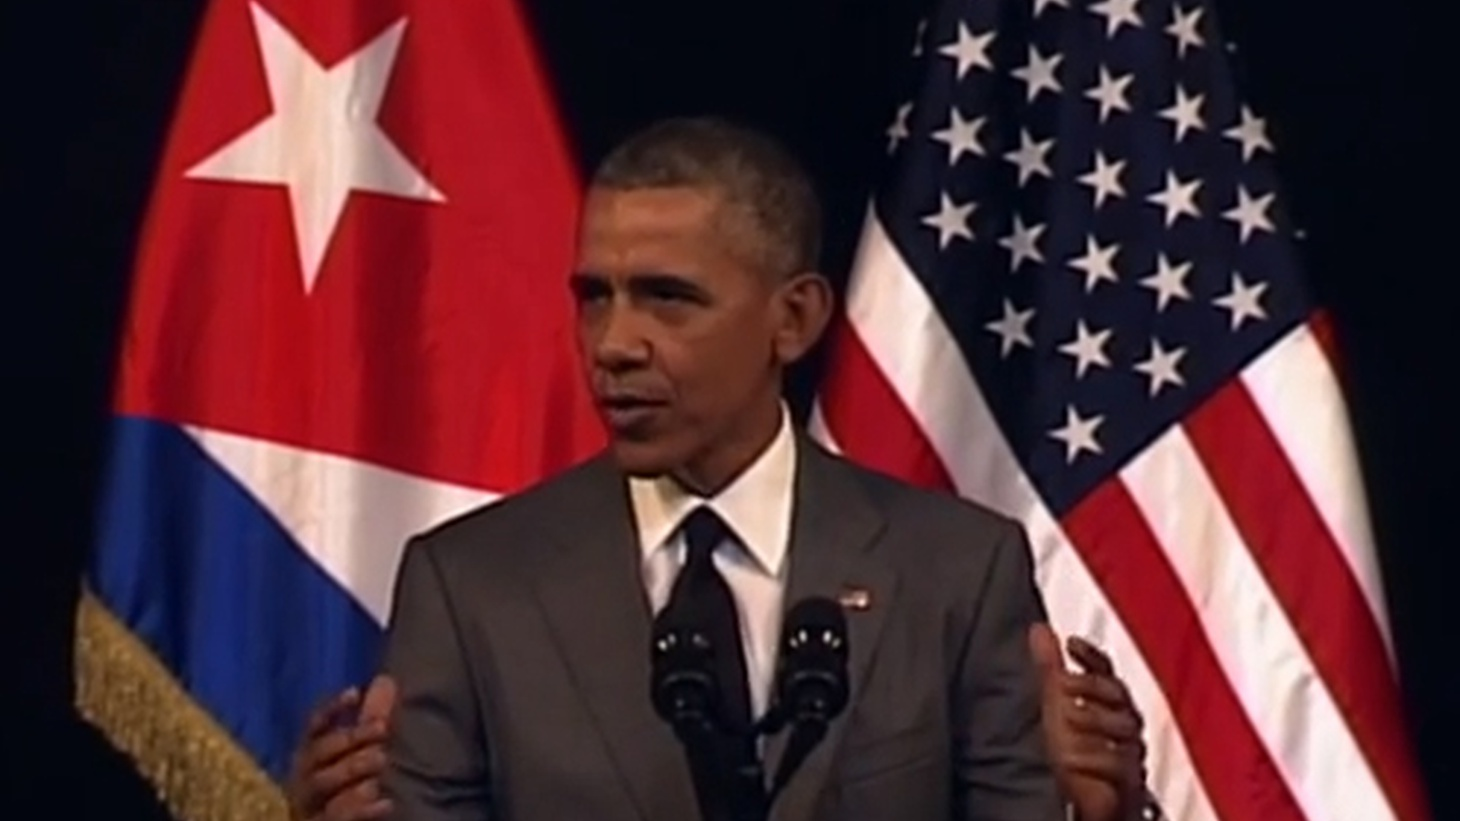 President Obama made a  historic speech  direct to the Cuban people today, peppered with Spanish phrases. He told them that the Castro regime has nothing to fear from the United States any more.